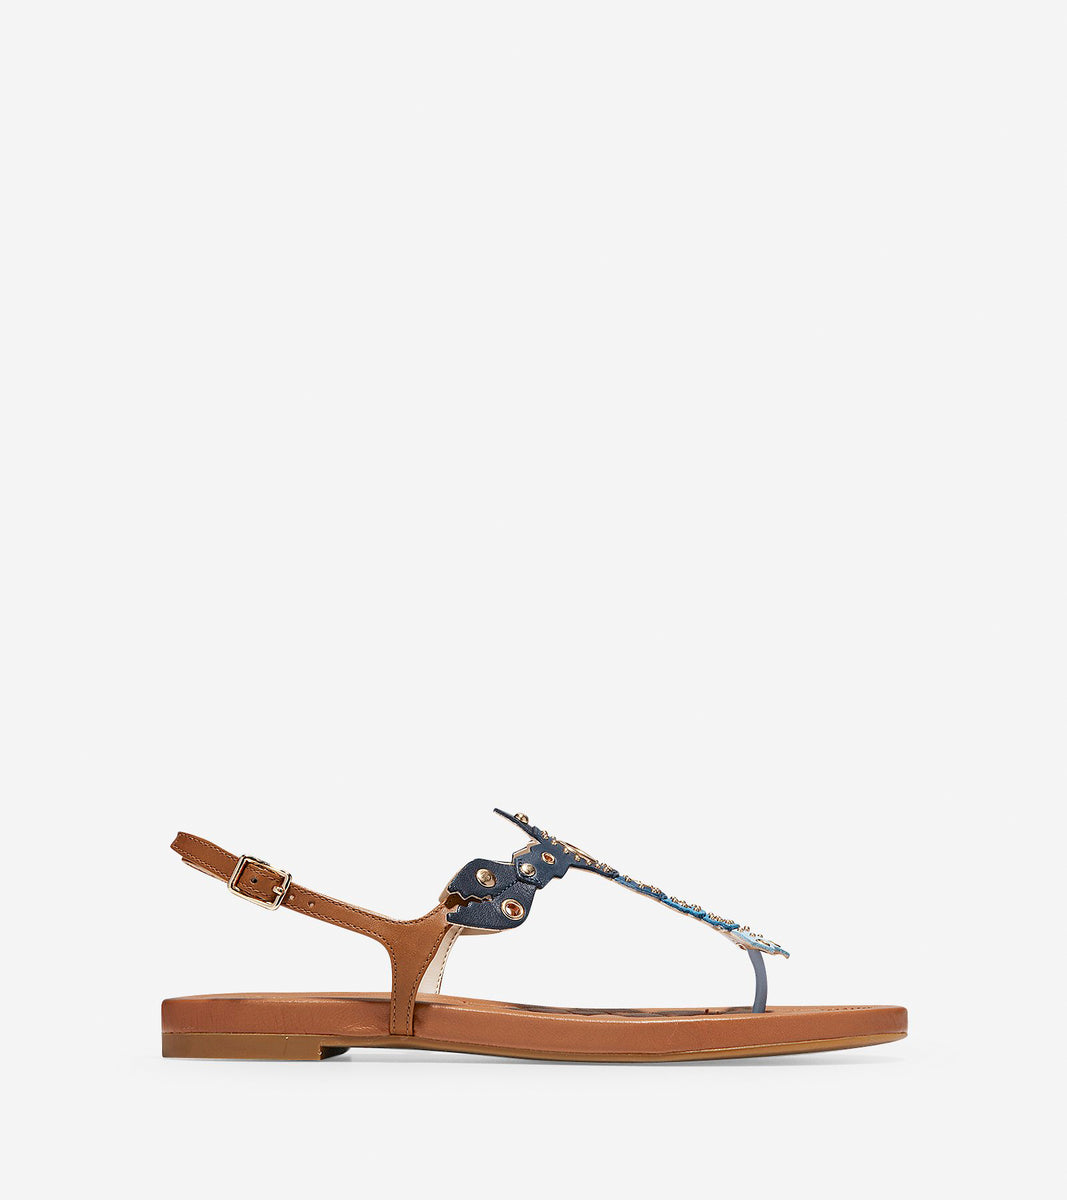 Pinch Lobster Sandal